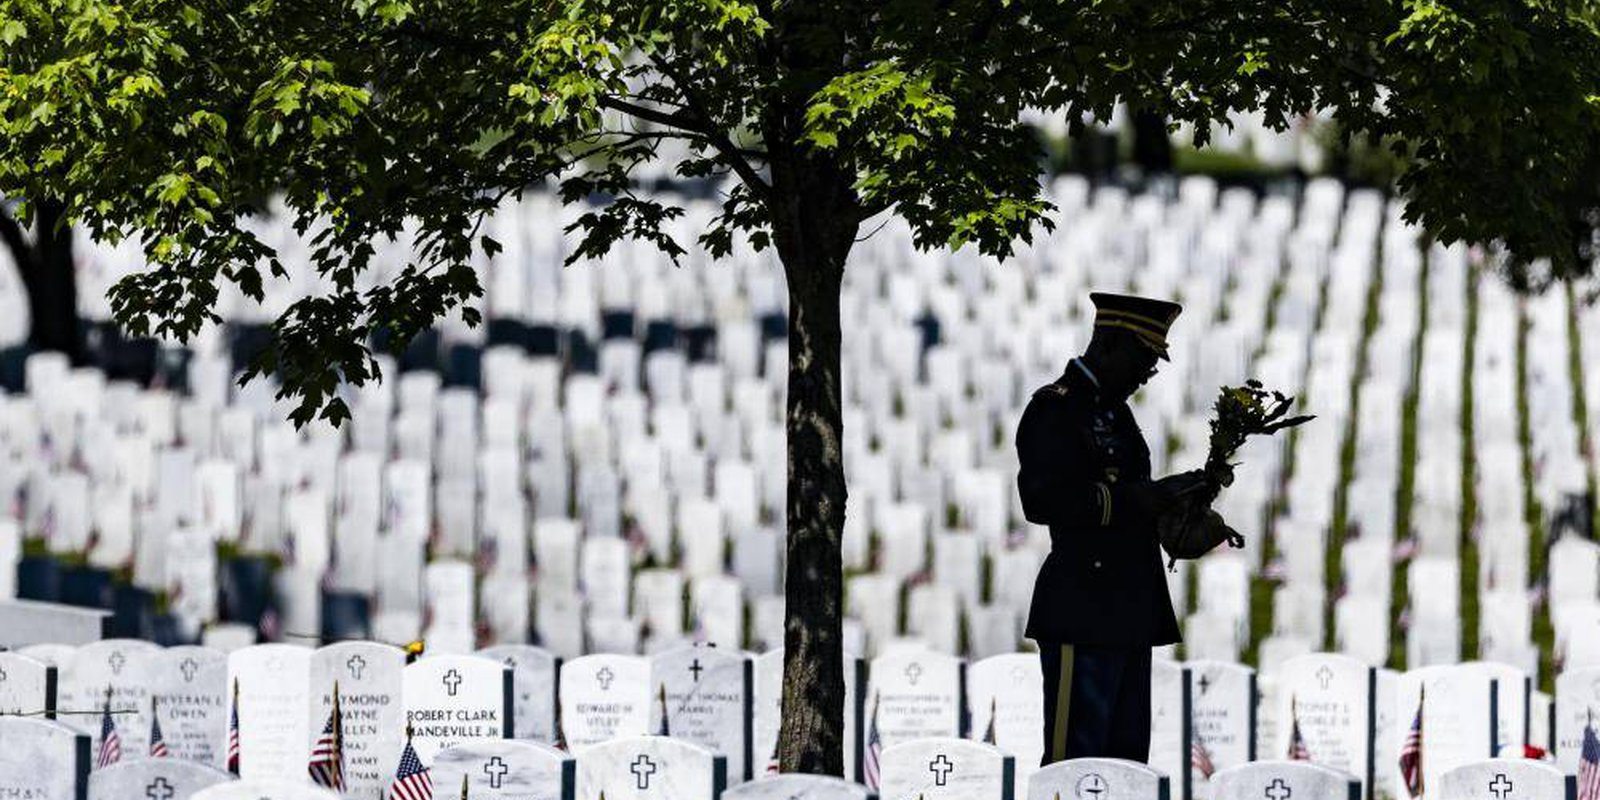 Image — A USsoldier stands with a bouquet of flowers amongheadstones of those killed during the wars in Iraq and Afghanistan in Section 60 of Arlington National Cemeteryin Arlington, Virginia. Photo by Samuel Corum/Getty Images.